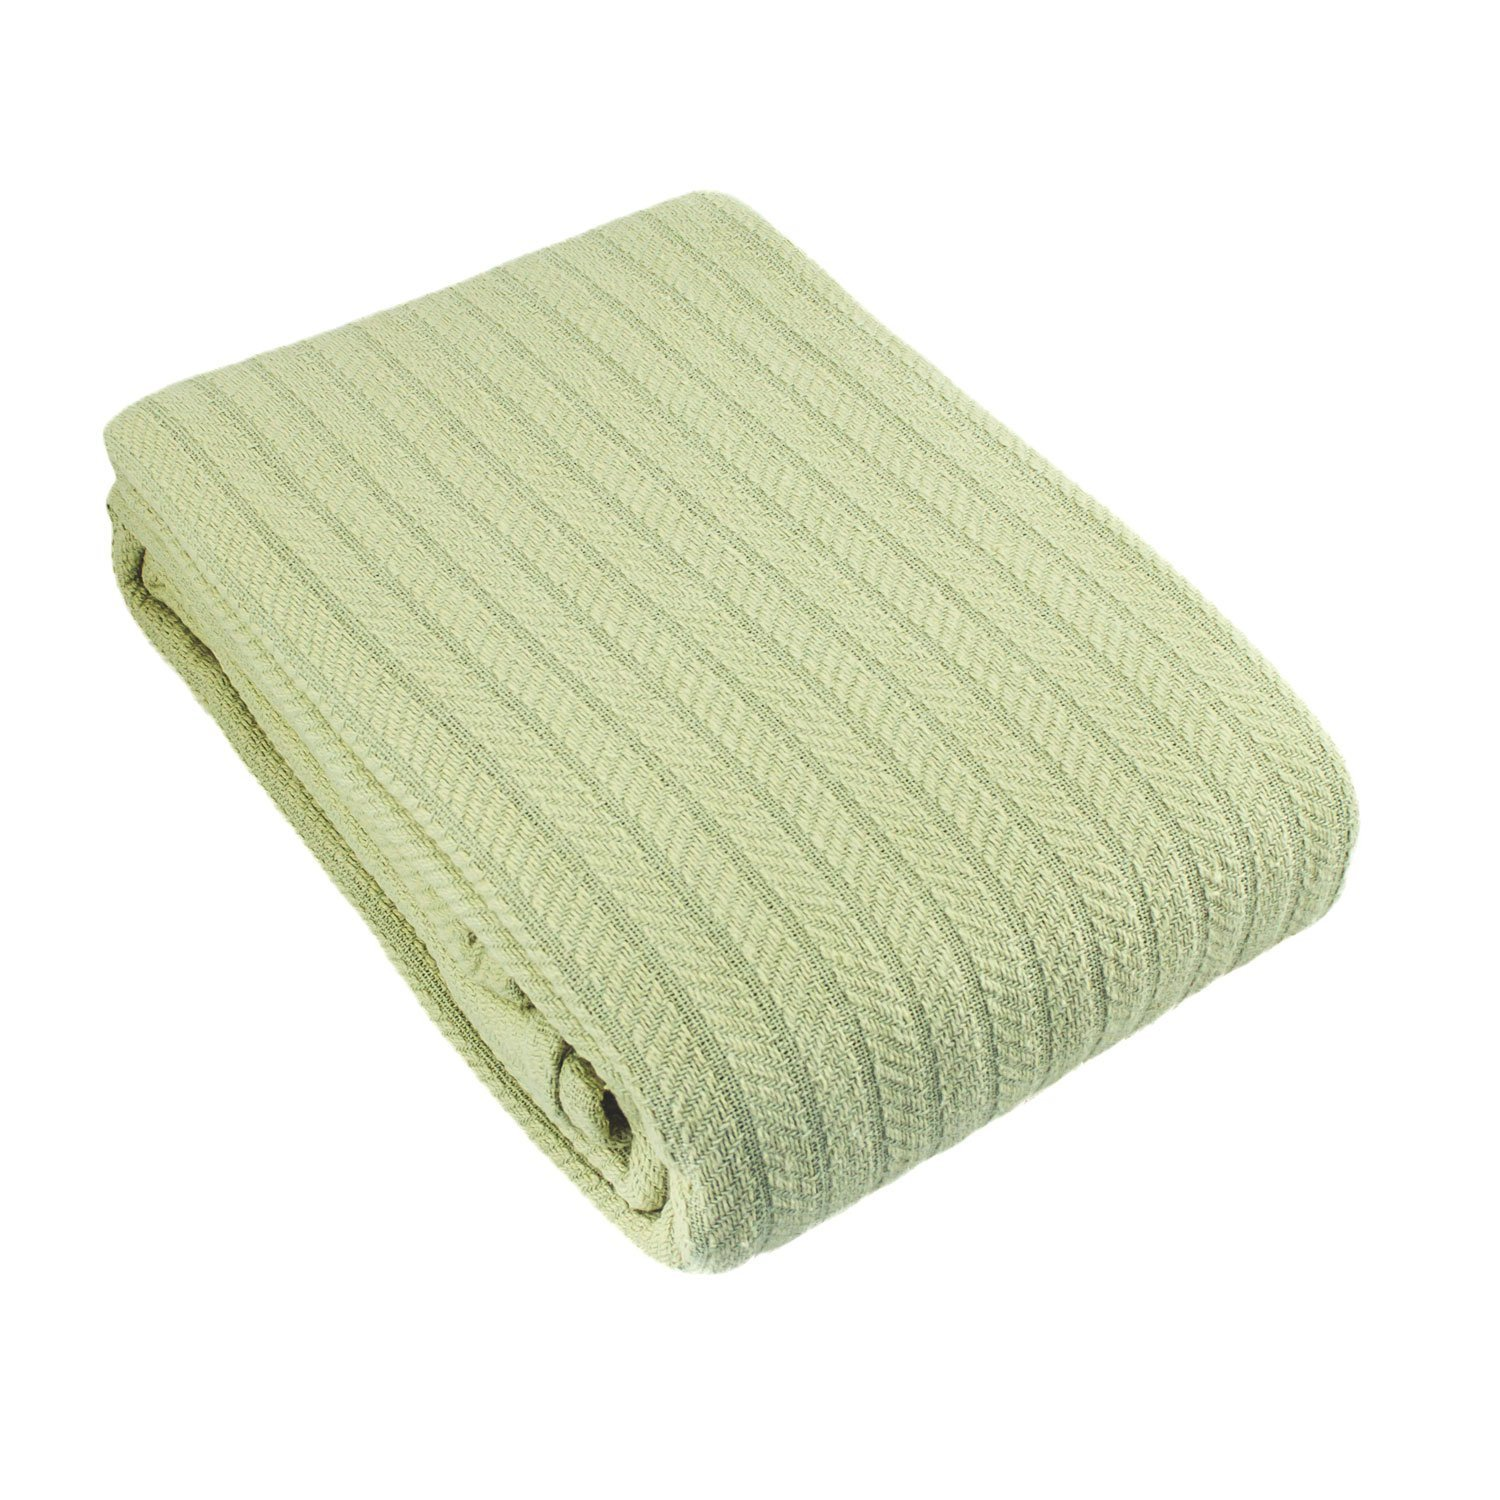 Cotton Cable Woven Blanket